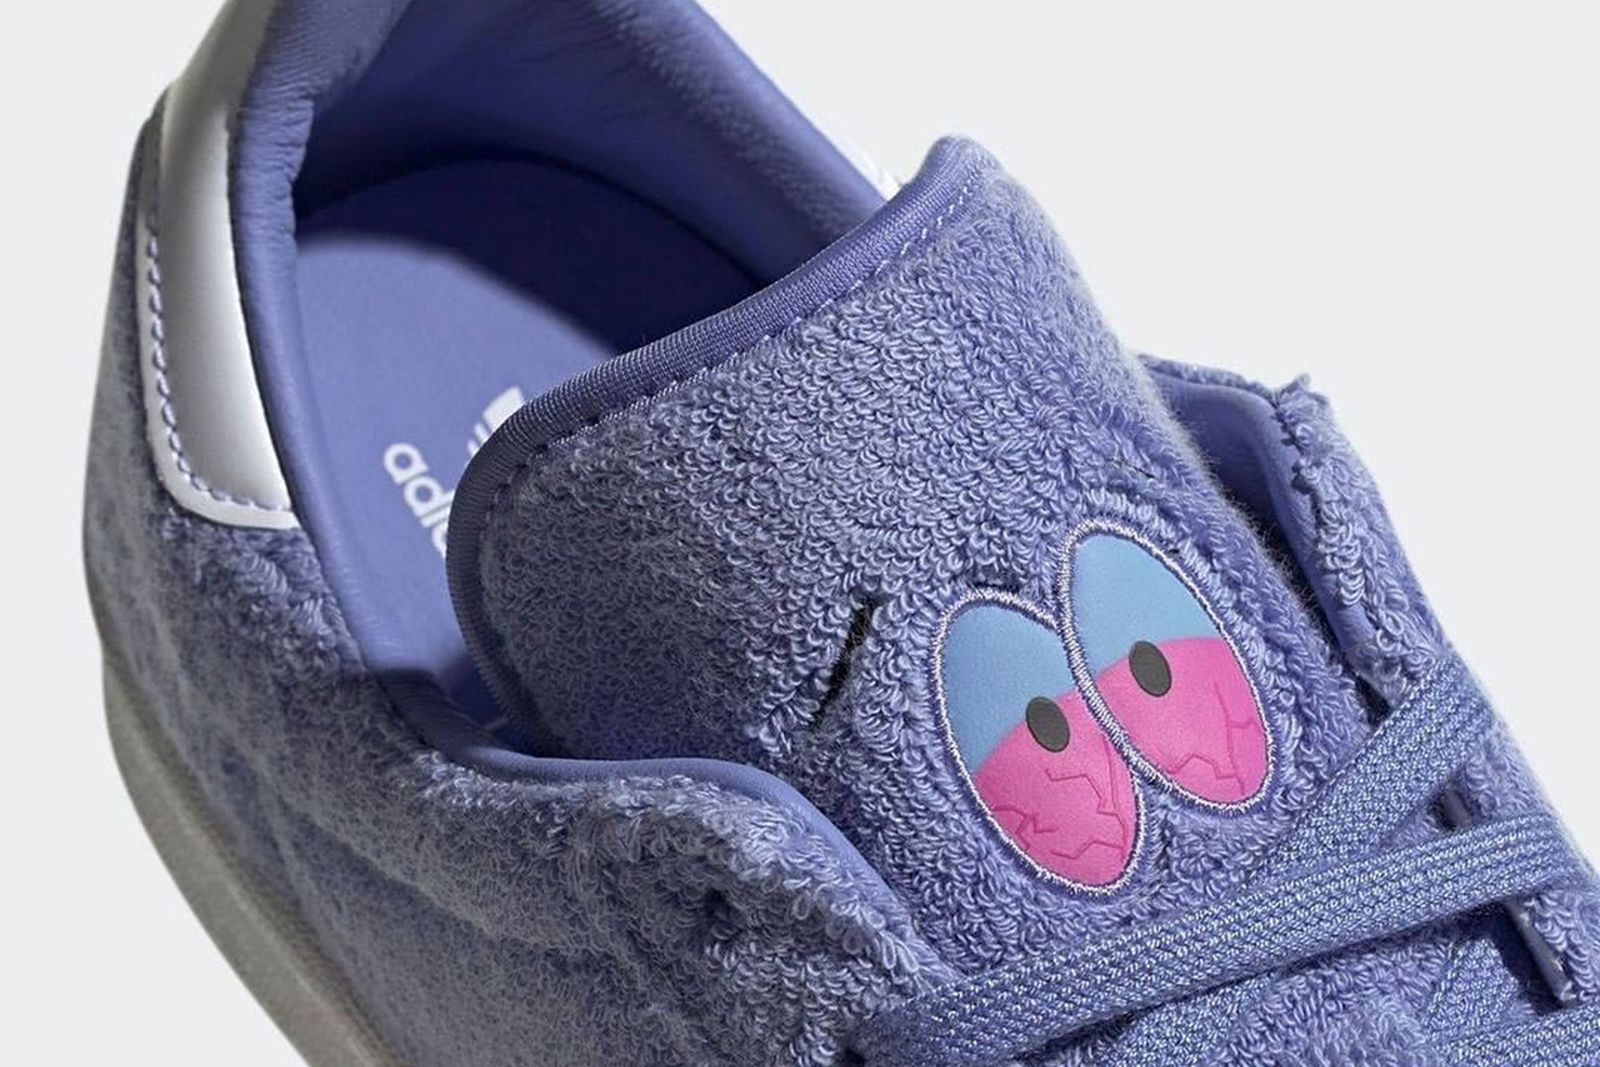 south-park-adidas-campus-80-towelie-release-date-price-06